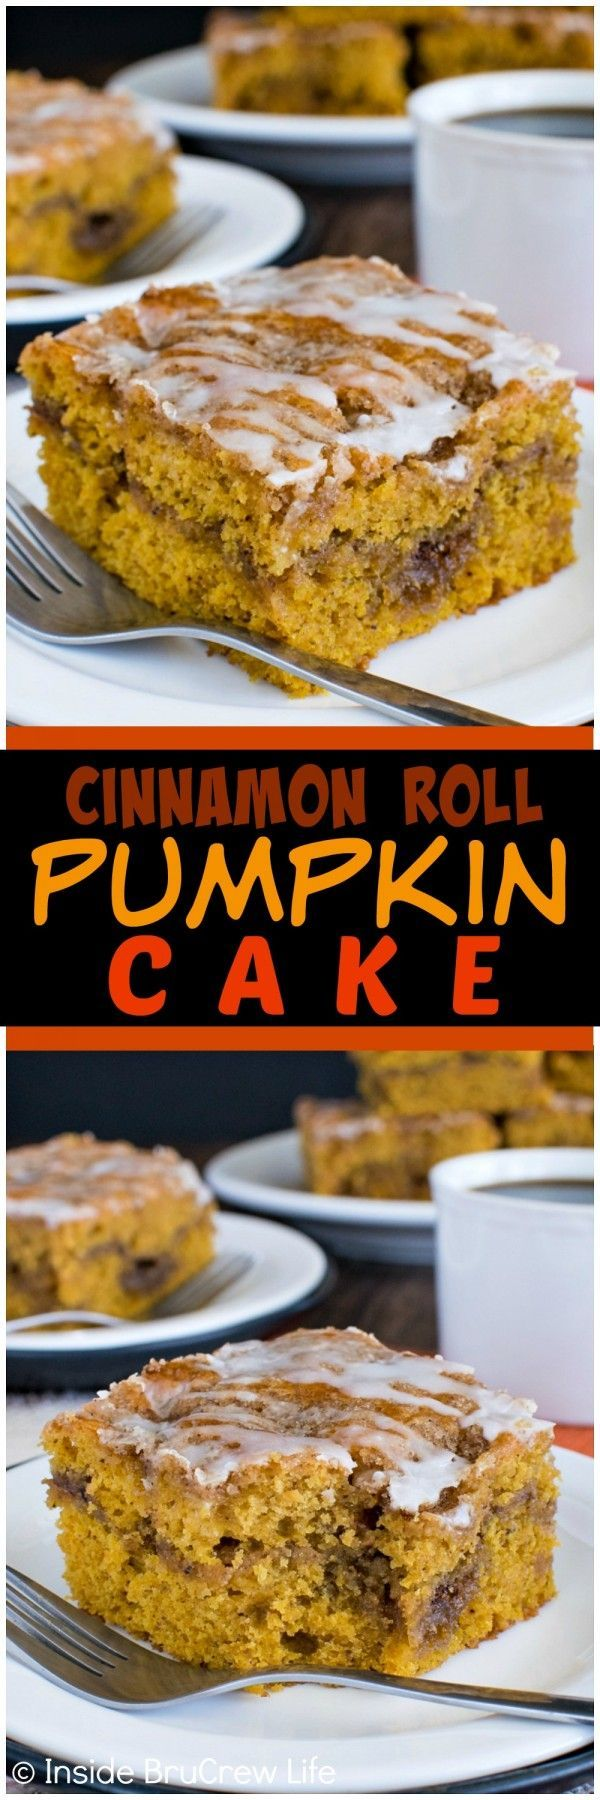 Cinnamon Roll Pumpkin Cake - pockets of cinnamon sugar make this coffee cake the best fall breakfast recipe!